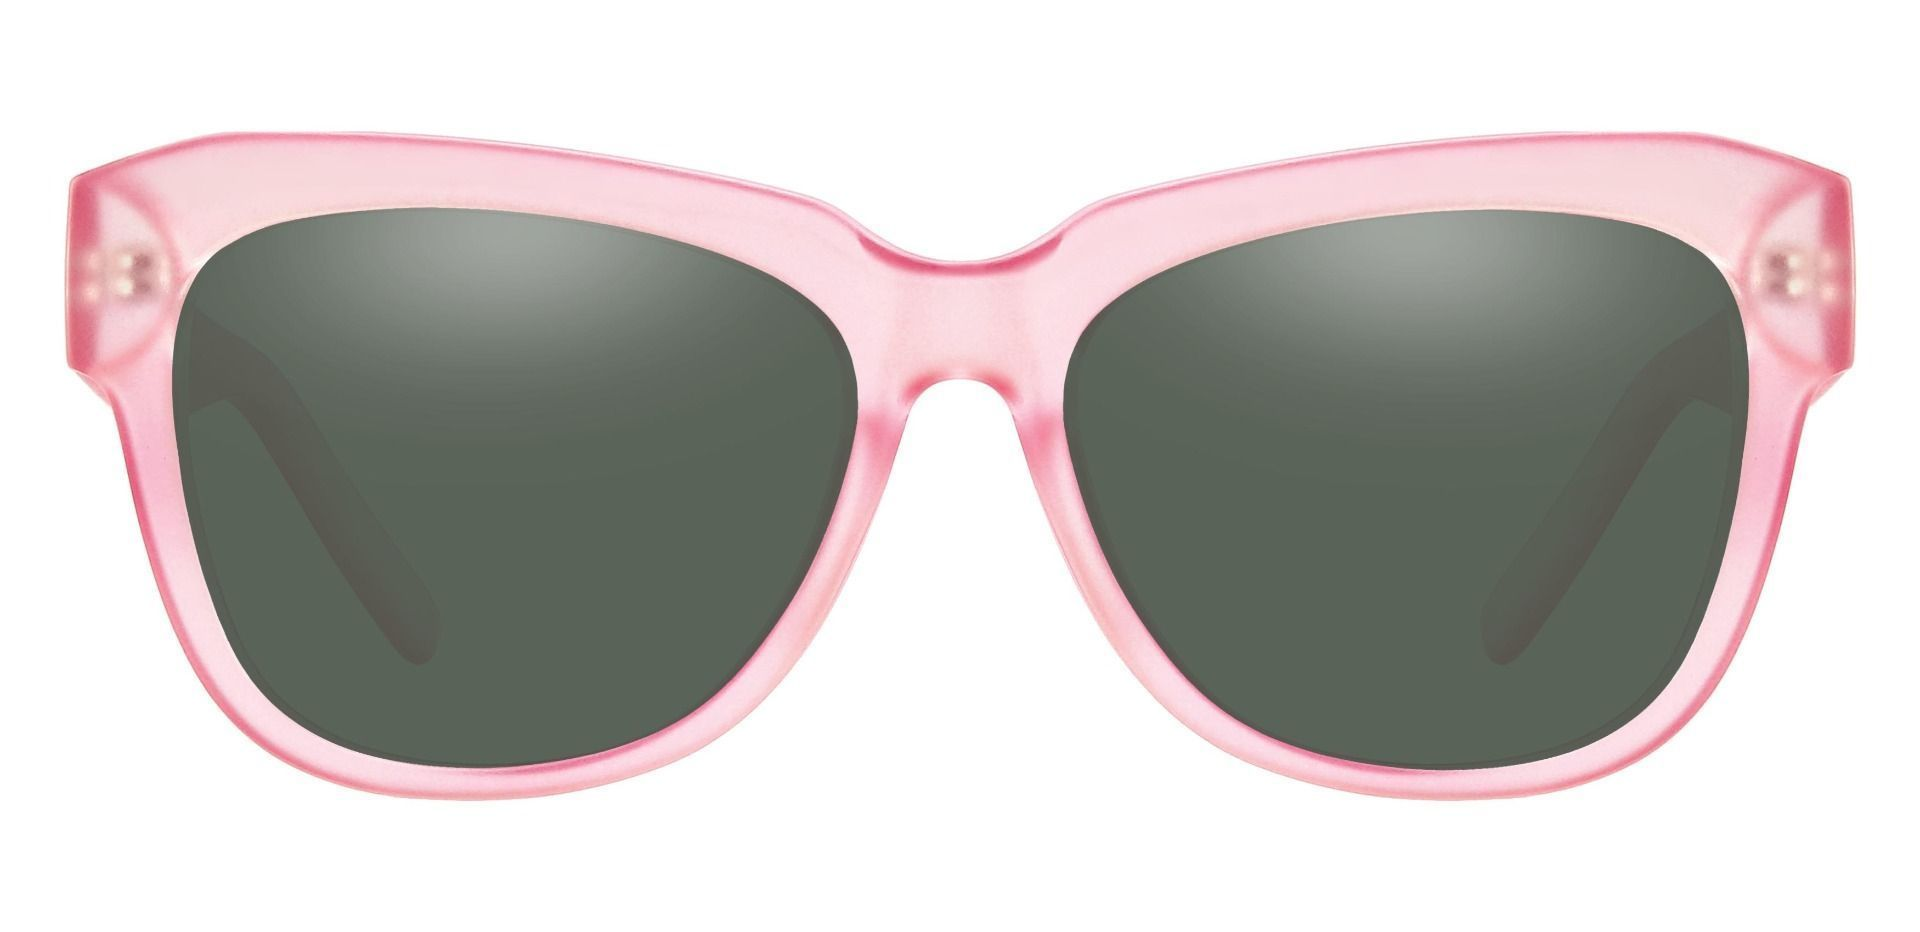 Gina Cat-Eye Reading Sunglasses - Pink Frame With Green Lenses